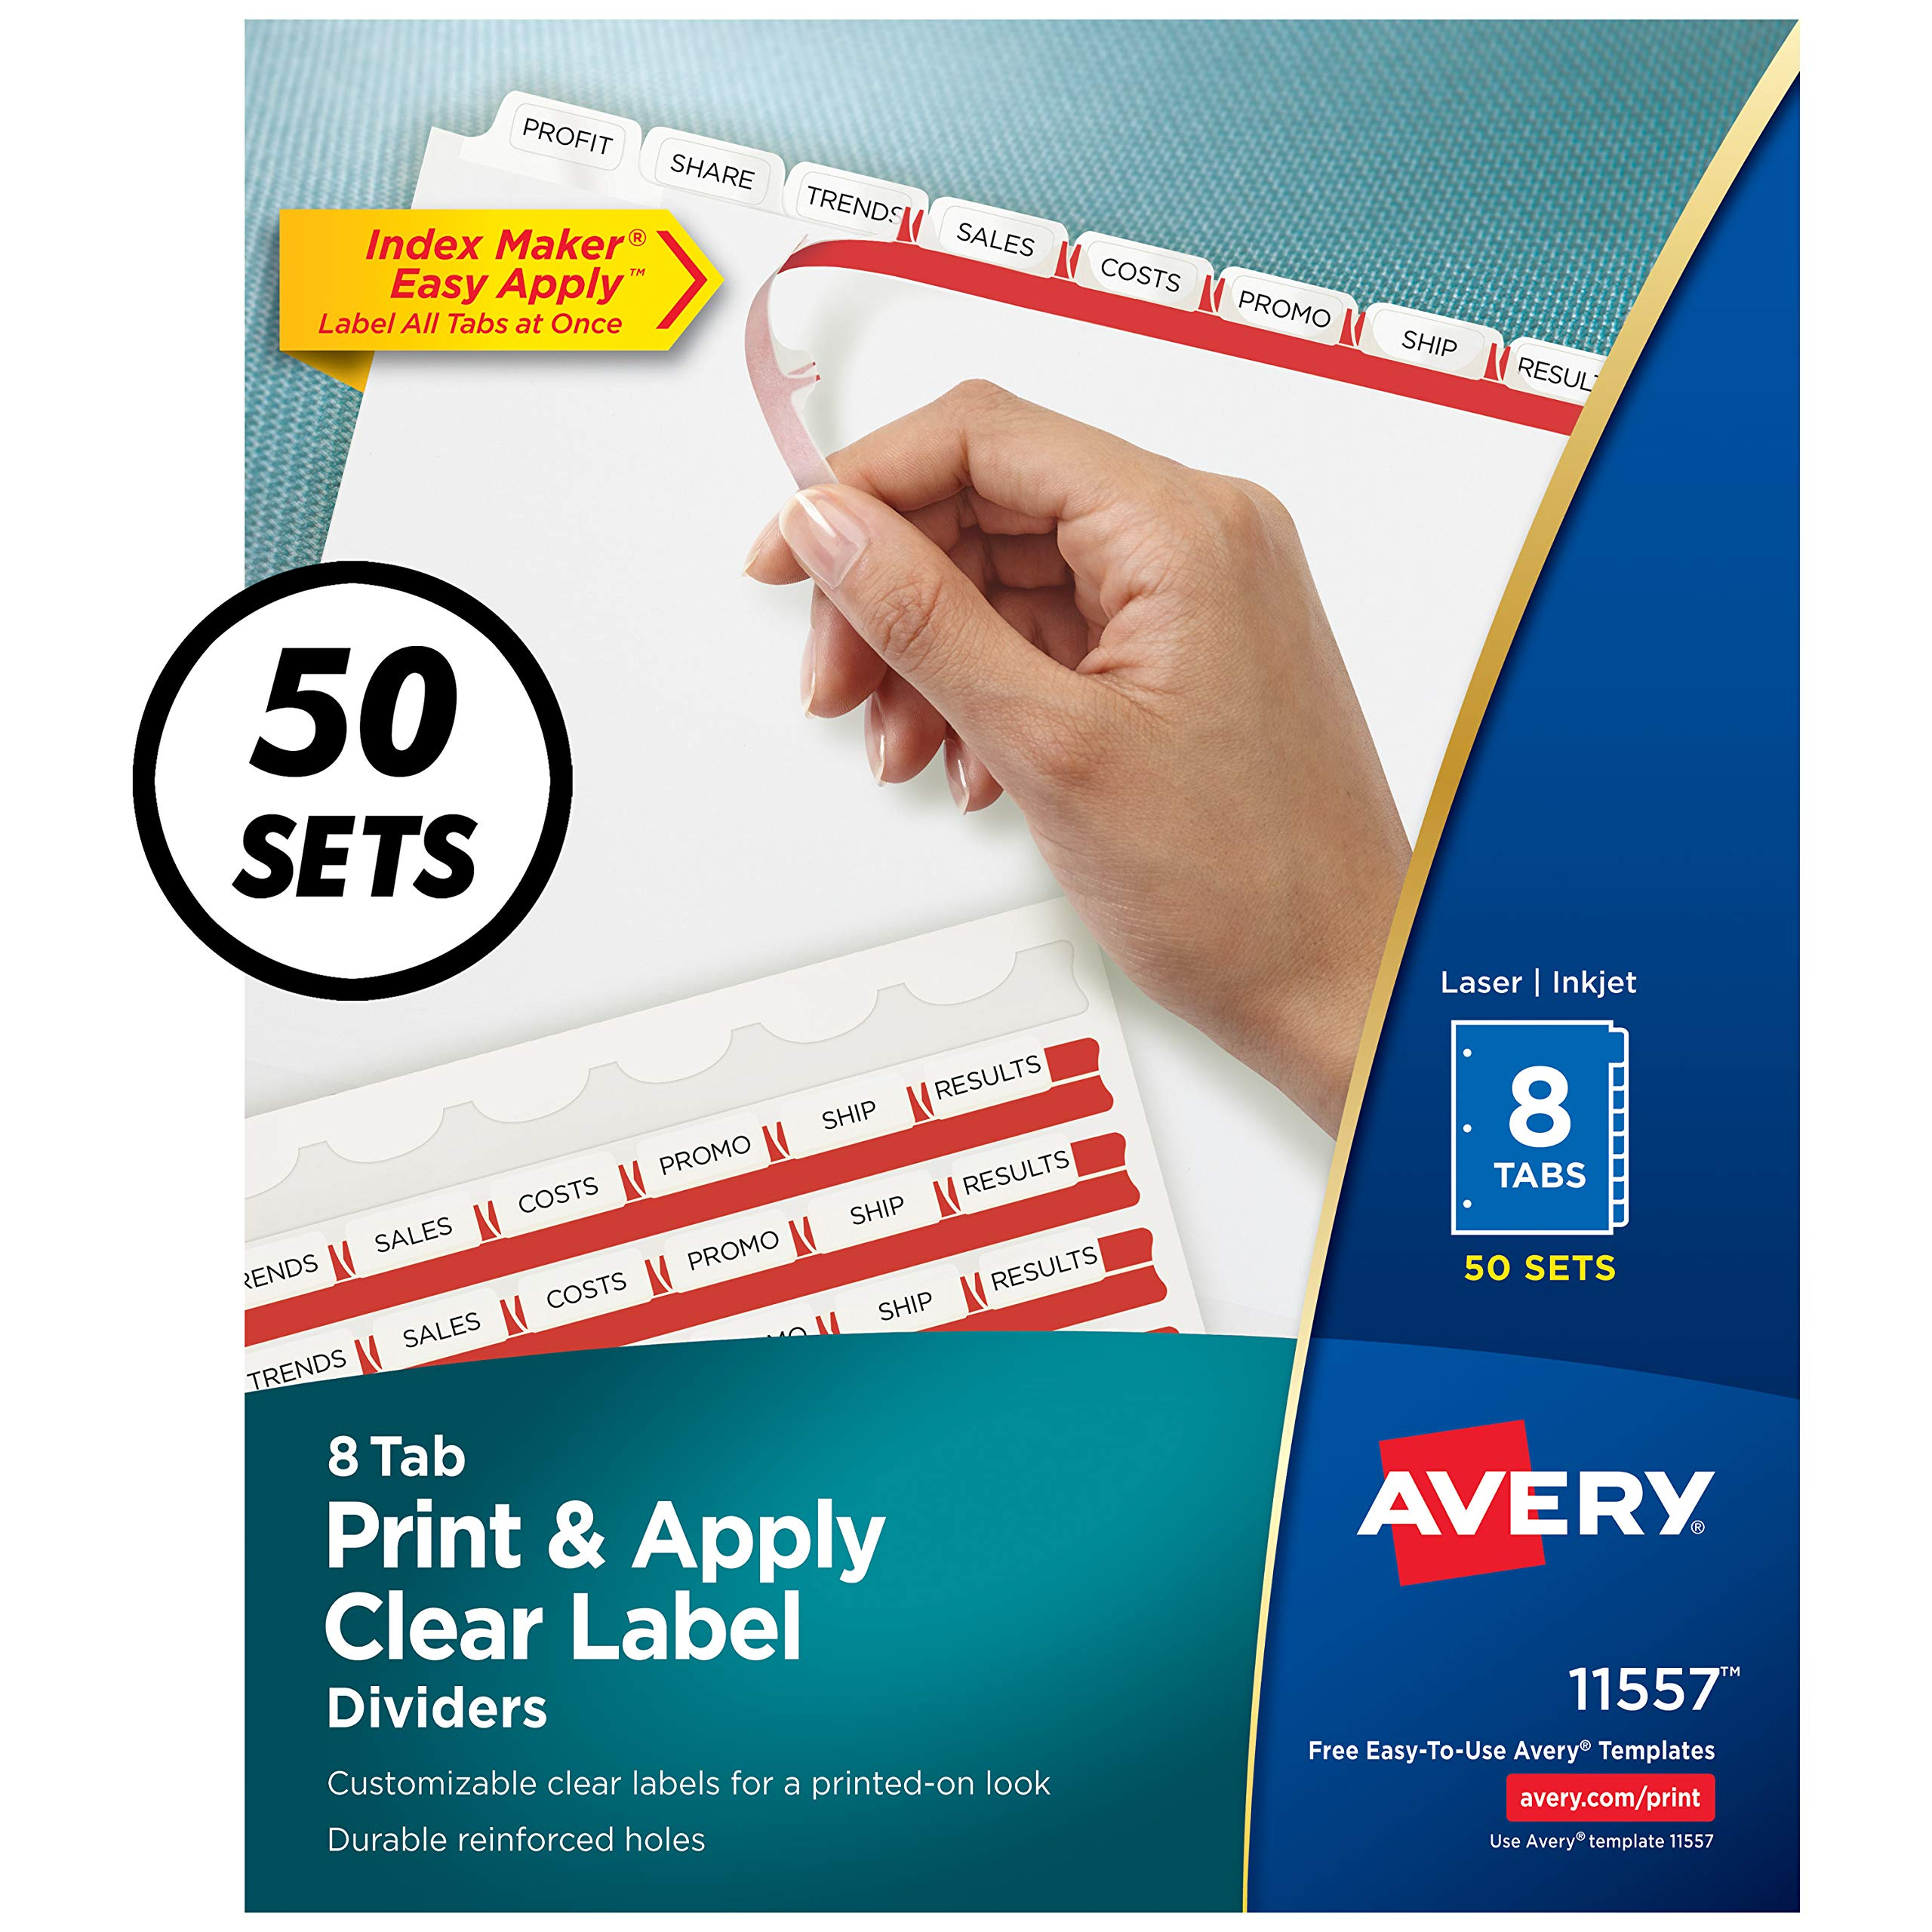 Avery Index Maker Clear Label Dividers, 8.5 x 11 Inch, 8 Tab, White Tab, 50 Sets  (11557) by Avery